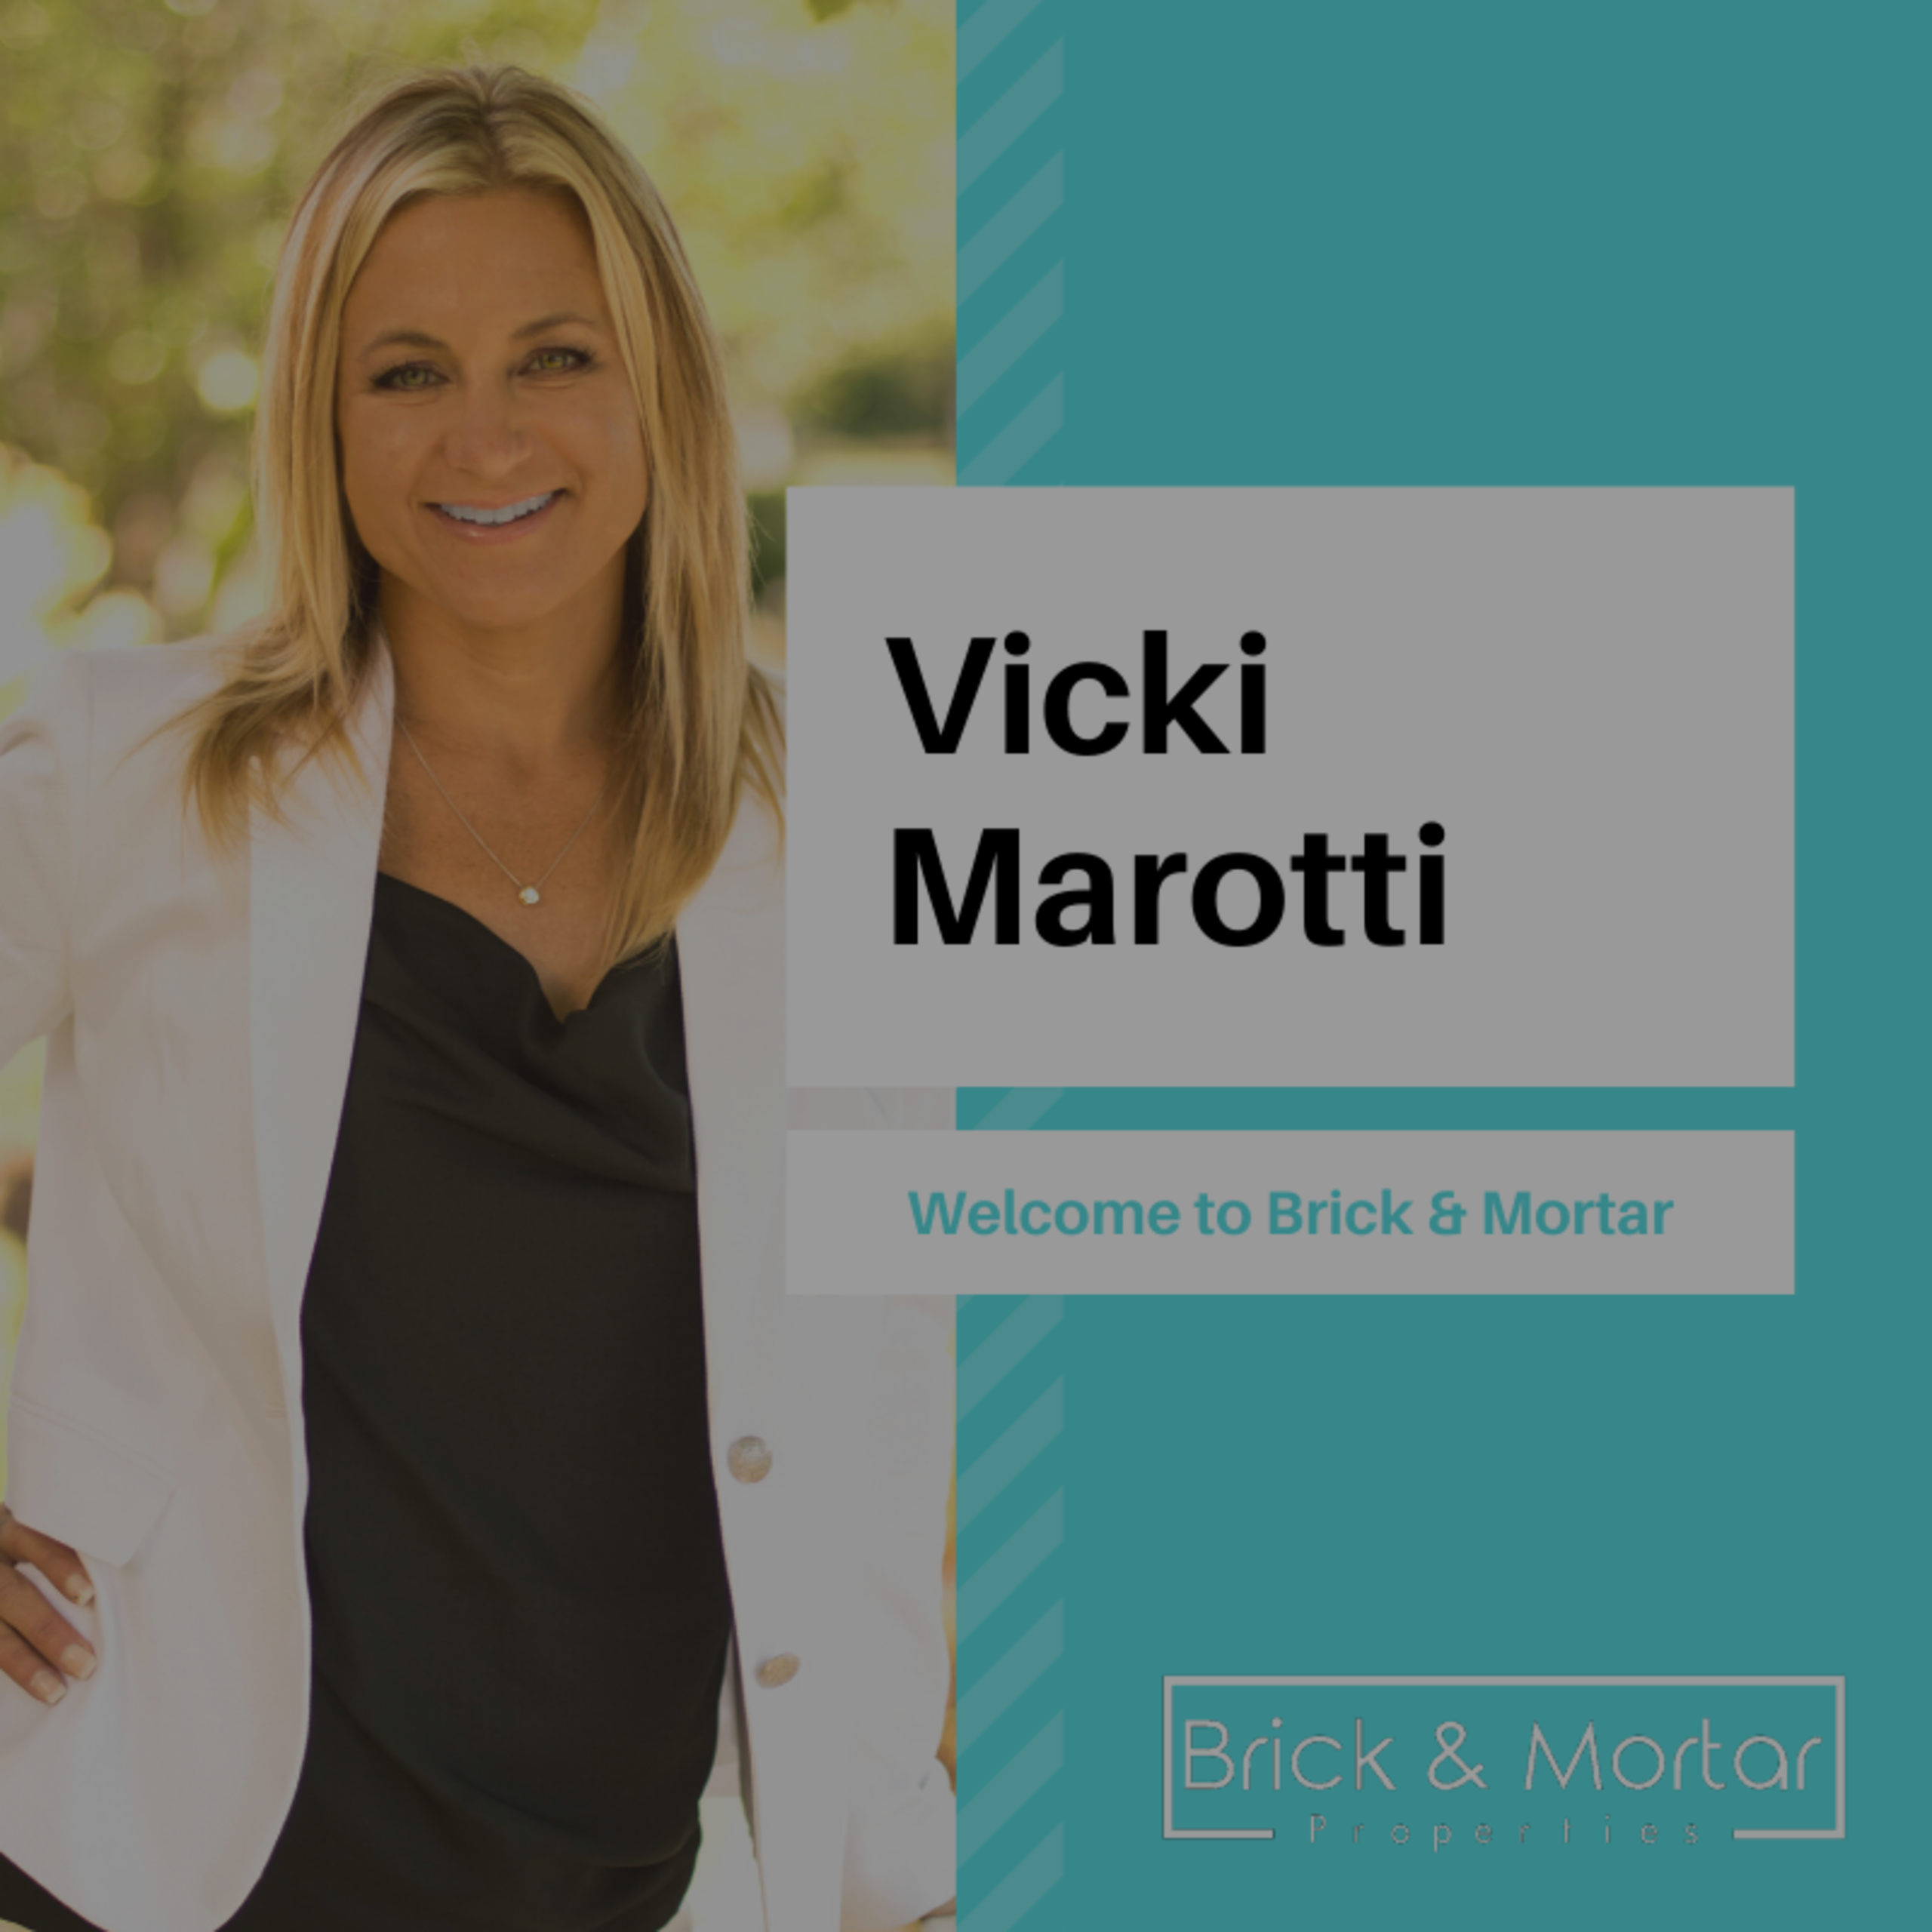 Welcome Vicki Marotti!